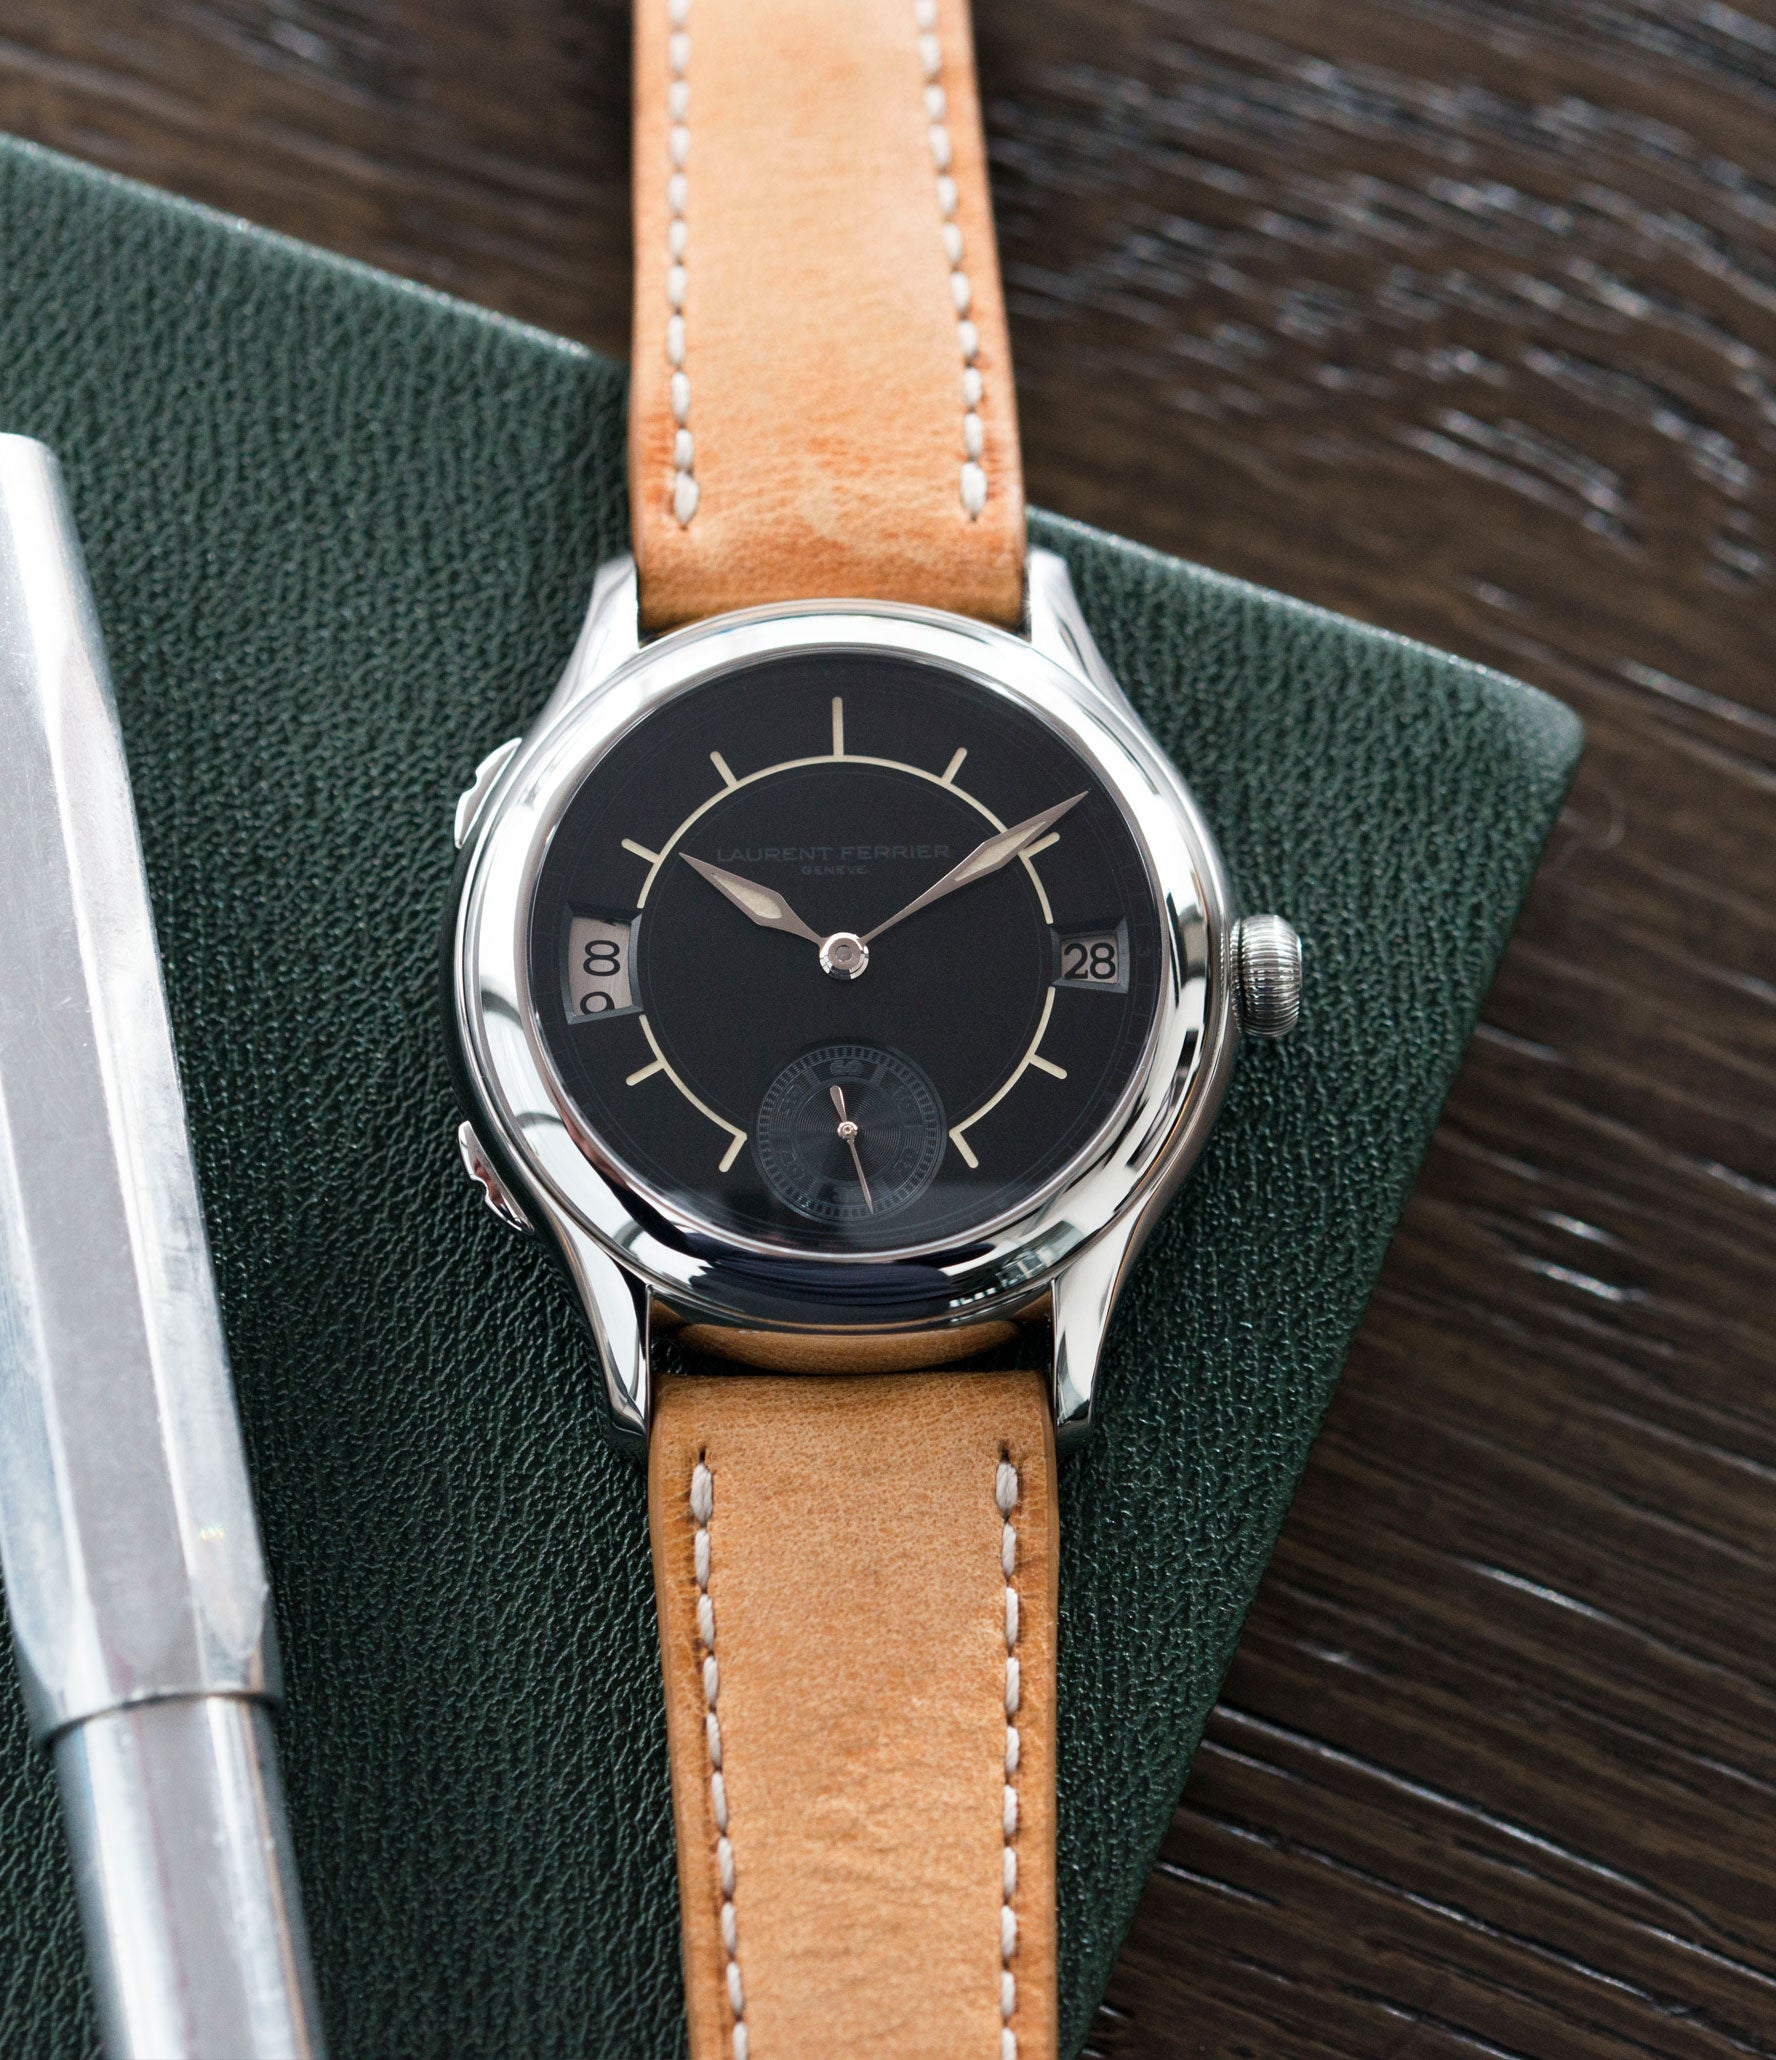 for sale Laurent Ferrier Galet Traveller Boreal steel dual-timezone black dial dress watch for sale online at A Collected Man London approved seller of pre-owned Laurent Ferrier independent watchmakers